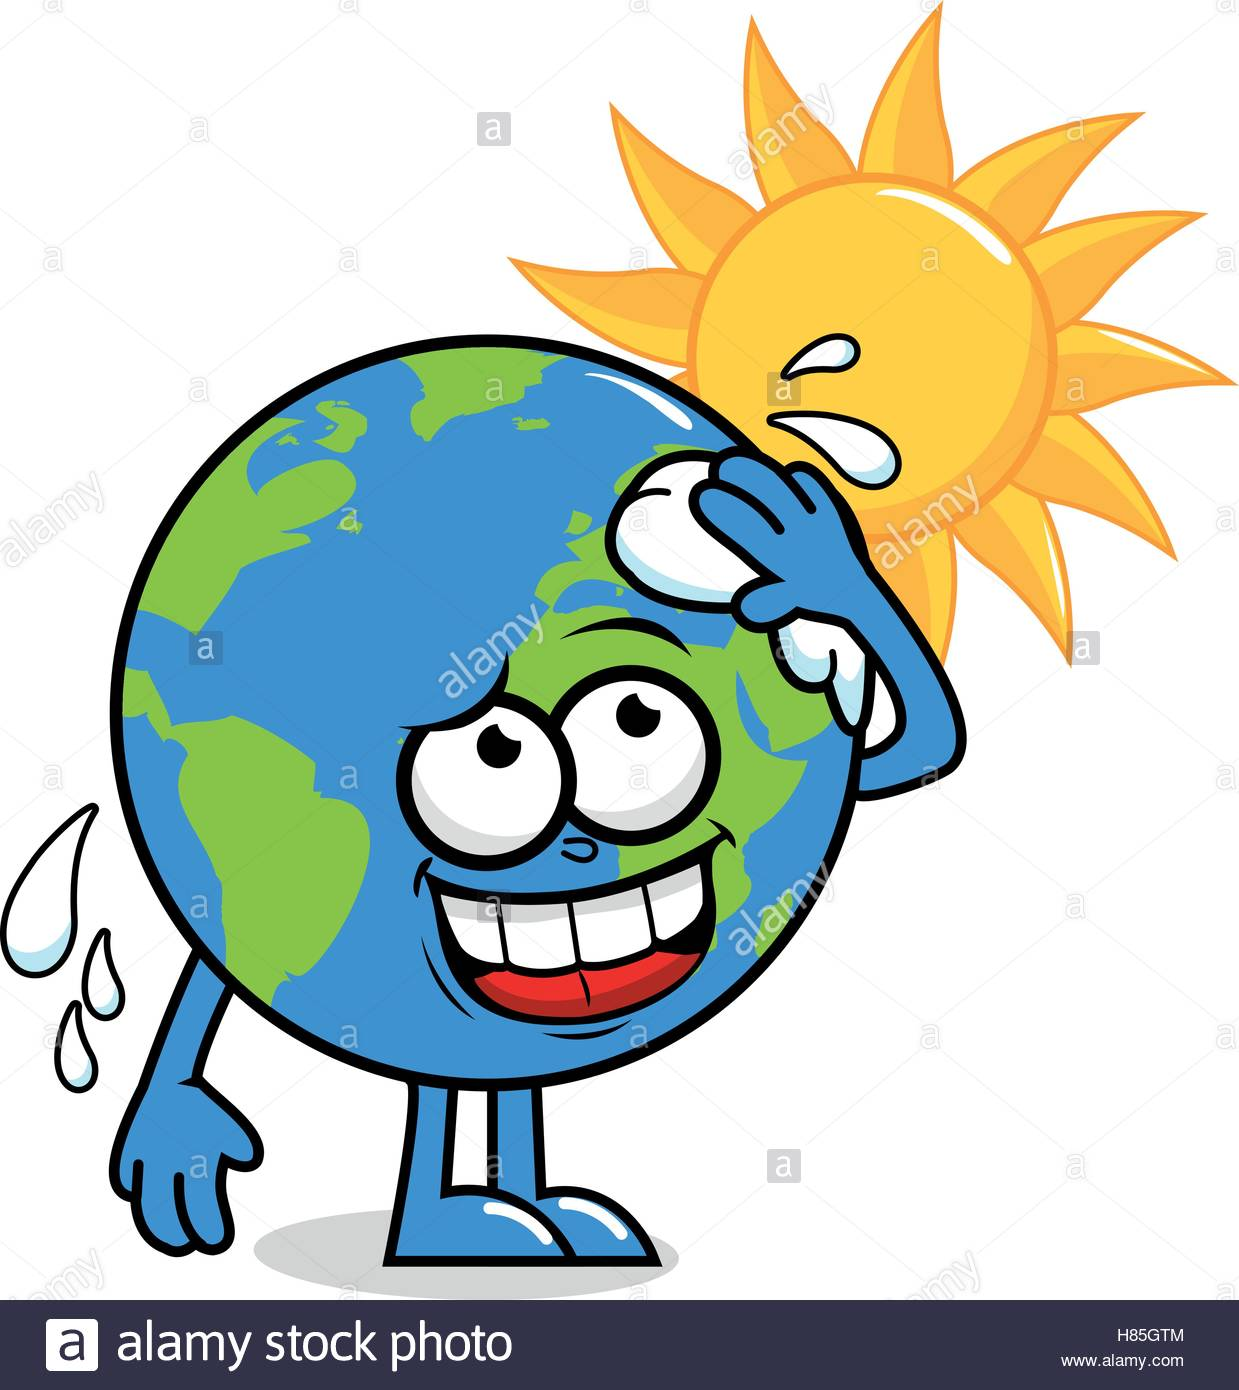 1239x1390 Cartoon Planet Earth Character In Front Of A Burning Sun Wiping